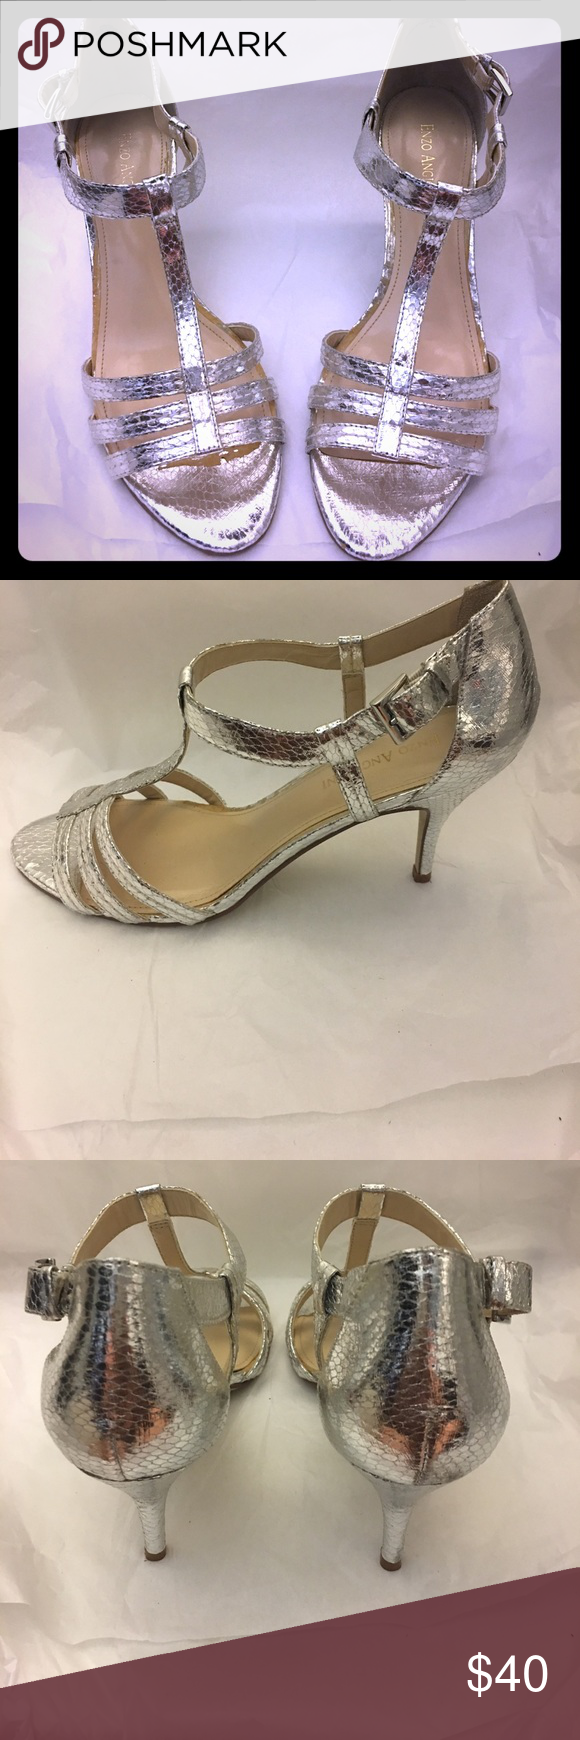 Women's Enzo Angiolini Silver Heels Size 8 Women's Enzo Angiolini Silver Heels that Fasten at the Ankle 3 inch heels -Some Fading on inside of Right Shoe (as shown) . Otherwise , great buy worn one time. Pair it with one of the  gowns in my closet ! Enzo Angiolini Shoes Heels